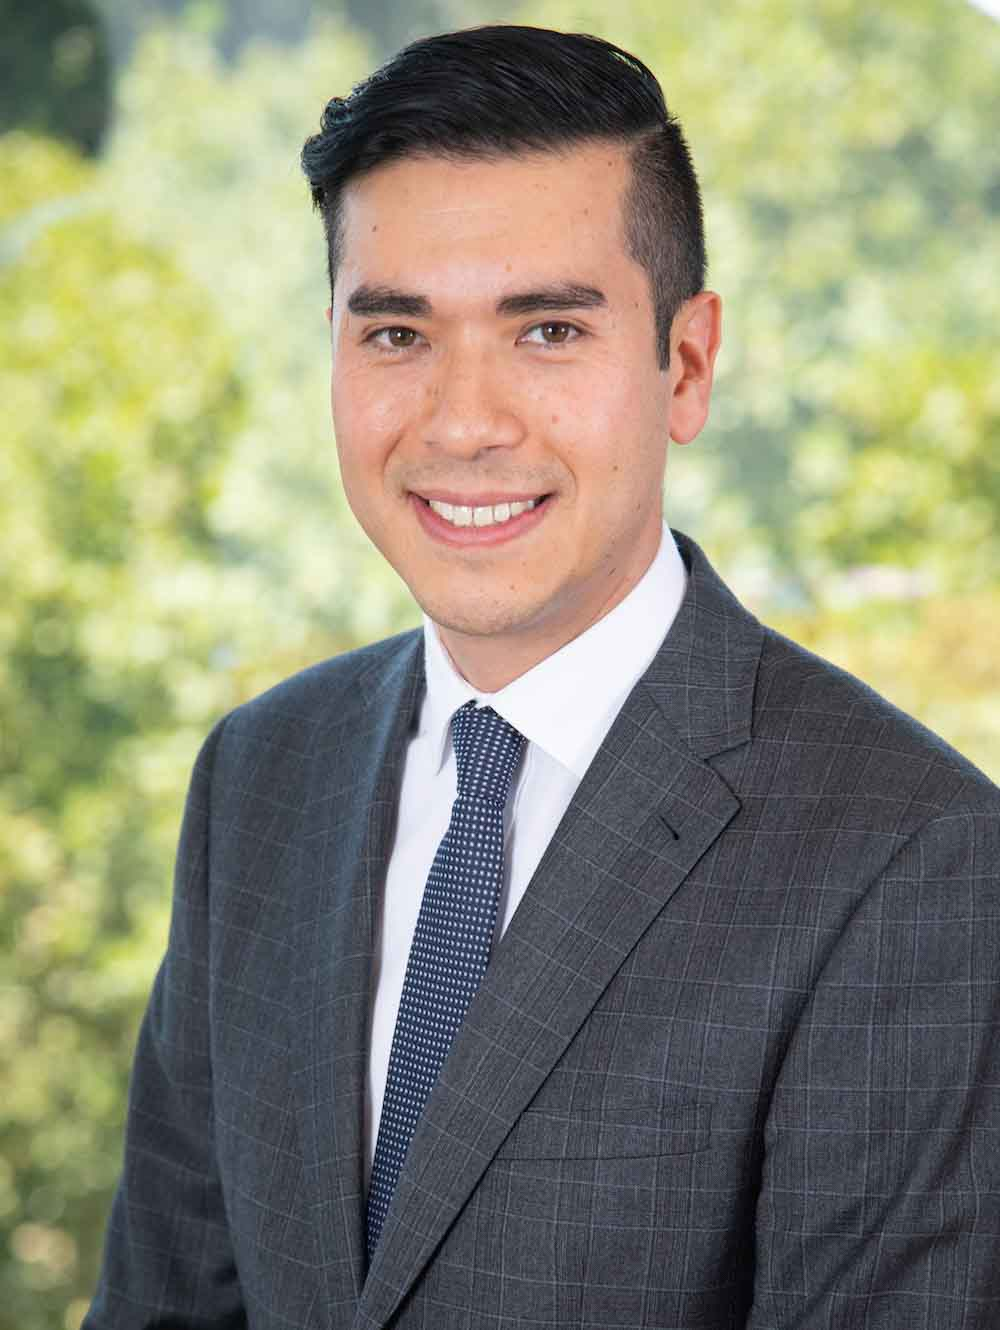 Charles Cheah - PartnerE cjc@bwslawyers.com.auP 02 9394 1034